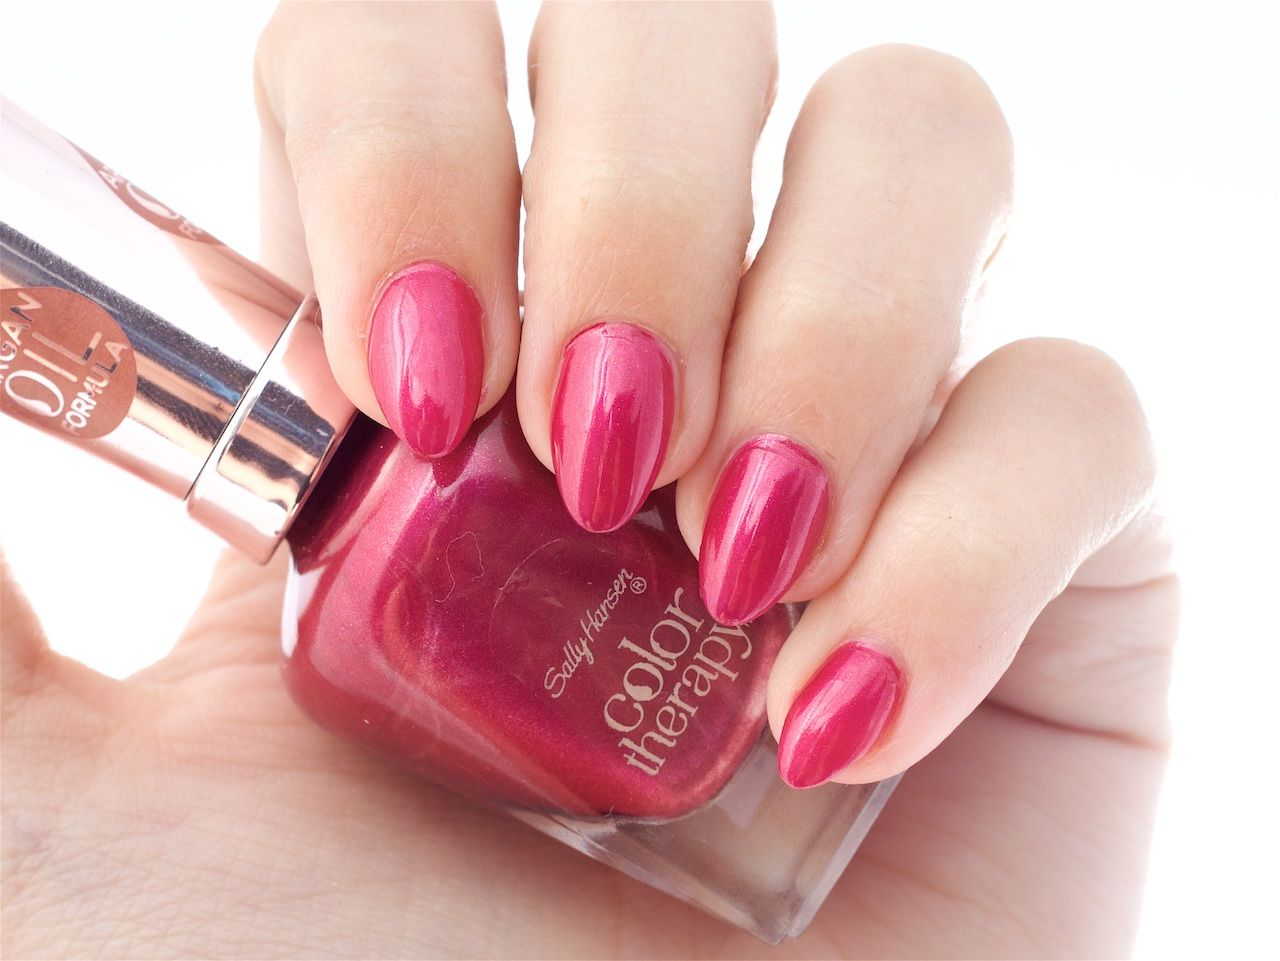 Wear Polish GuiltFree With Sally Hansen Color Therapy